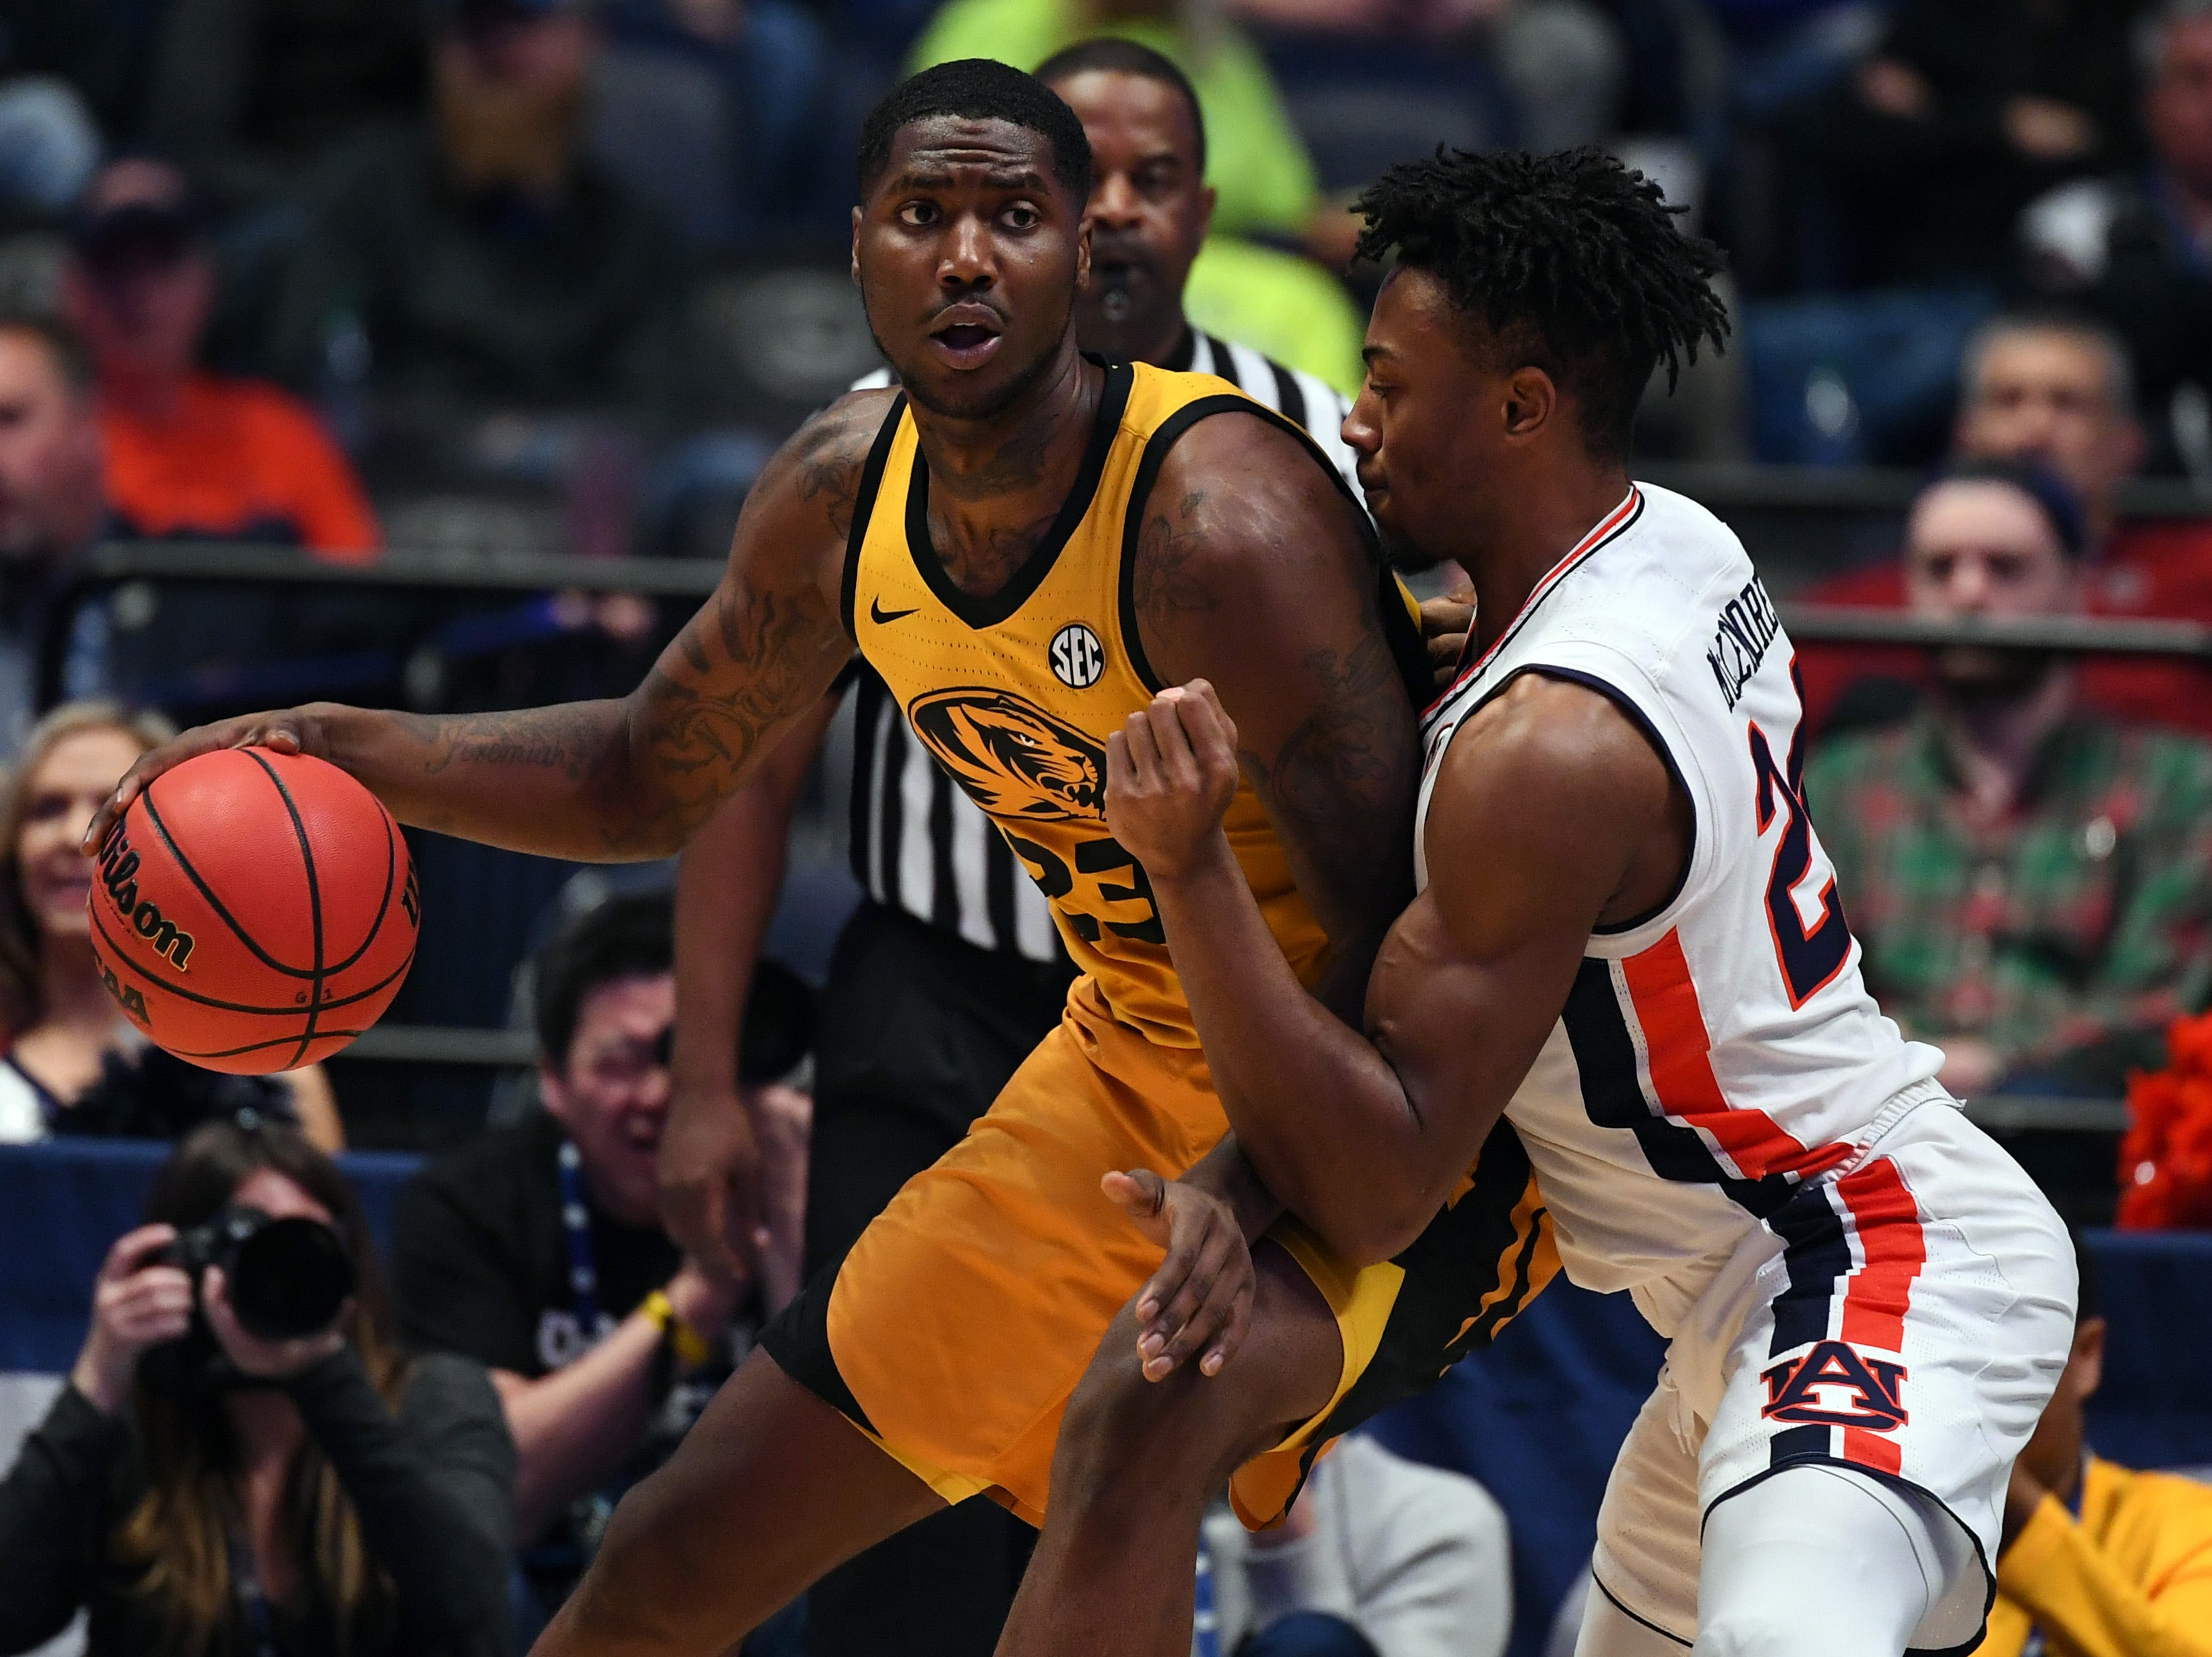 Mar 14, 2019; Nashville, TN, USA; Missouri Tigers forward Jeremiah Tilmon (23) works against Auburn Tigers forward Anfernee McLemore (24) during the first half of the SEC conference tournament at Bridgestone Arena. Mandatory Credit: Christopher Hanewinckel-USA TODAY Sports